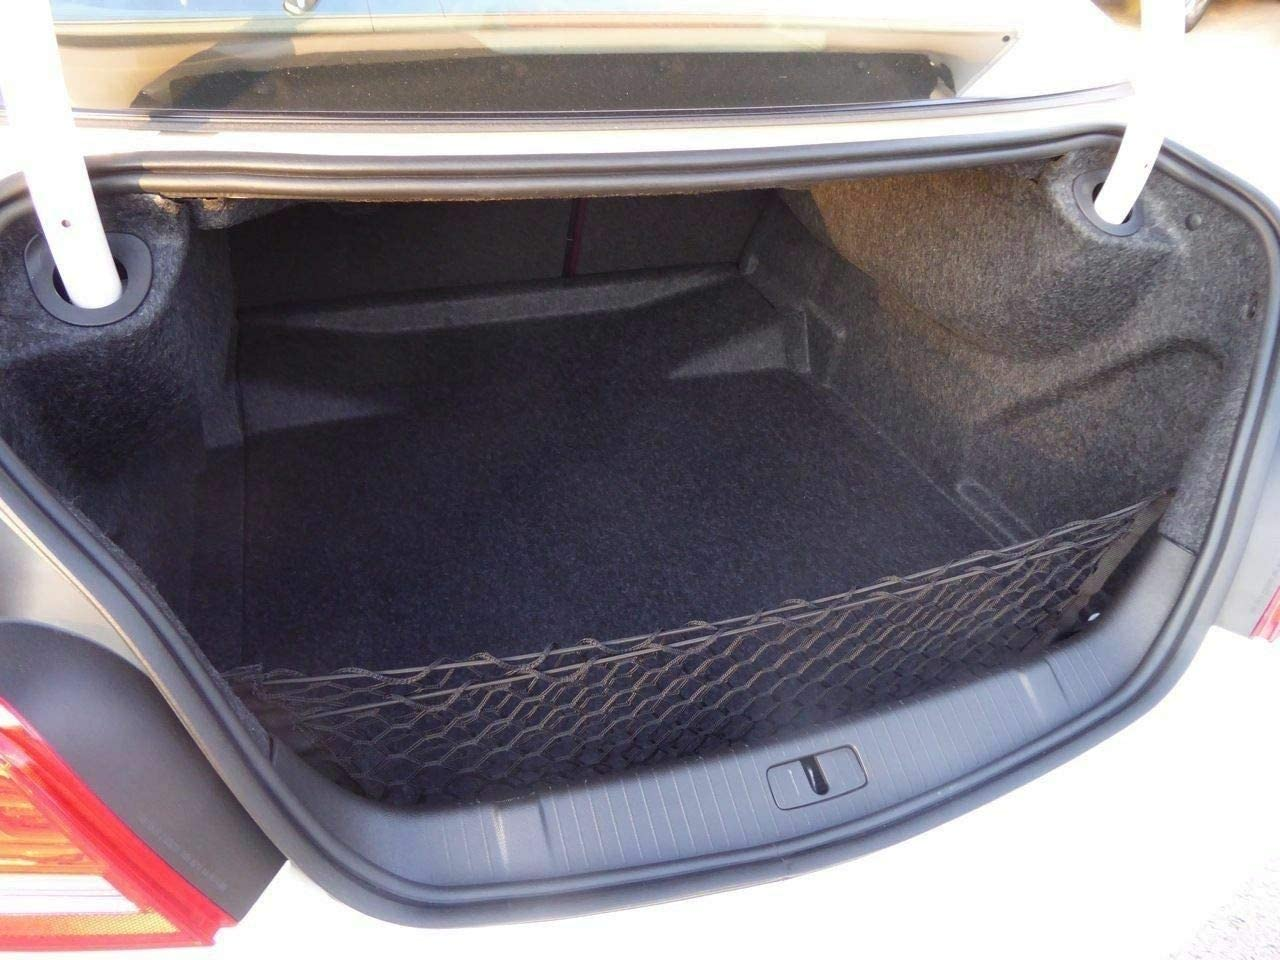 Rear Trunk Space Area Black Vertical Envelope Style Storage Organizer Web Mesh Luggage Bungee Compartment Cargo Net Red De Carga Del Maletero Trasero for GMC TERRAIN /& CHEVY EQUINOX 2018 2019 2020 NEW